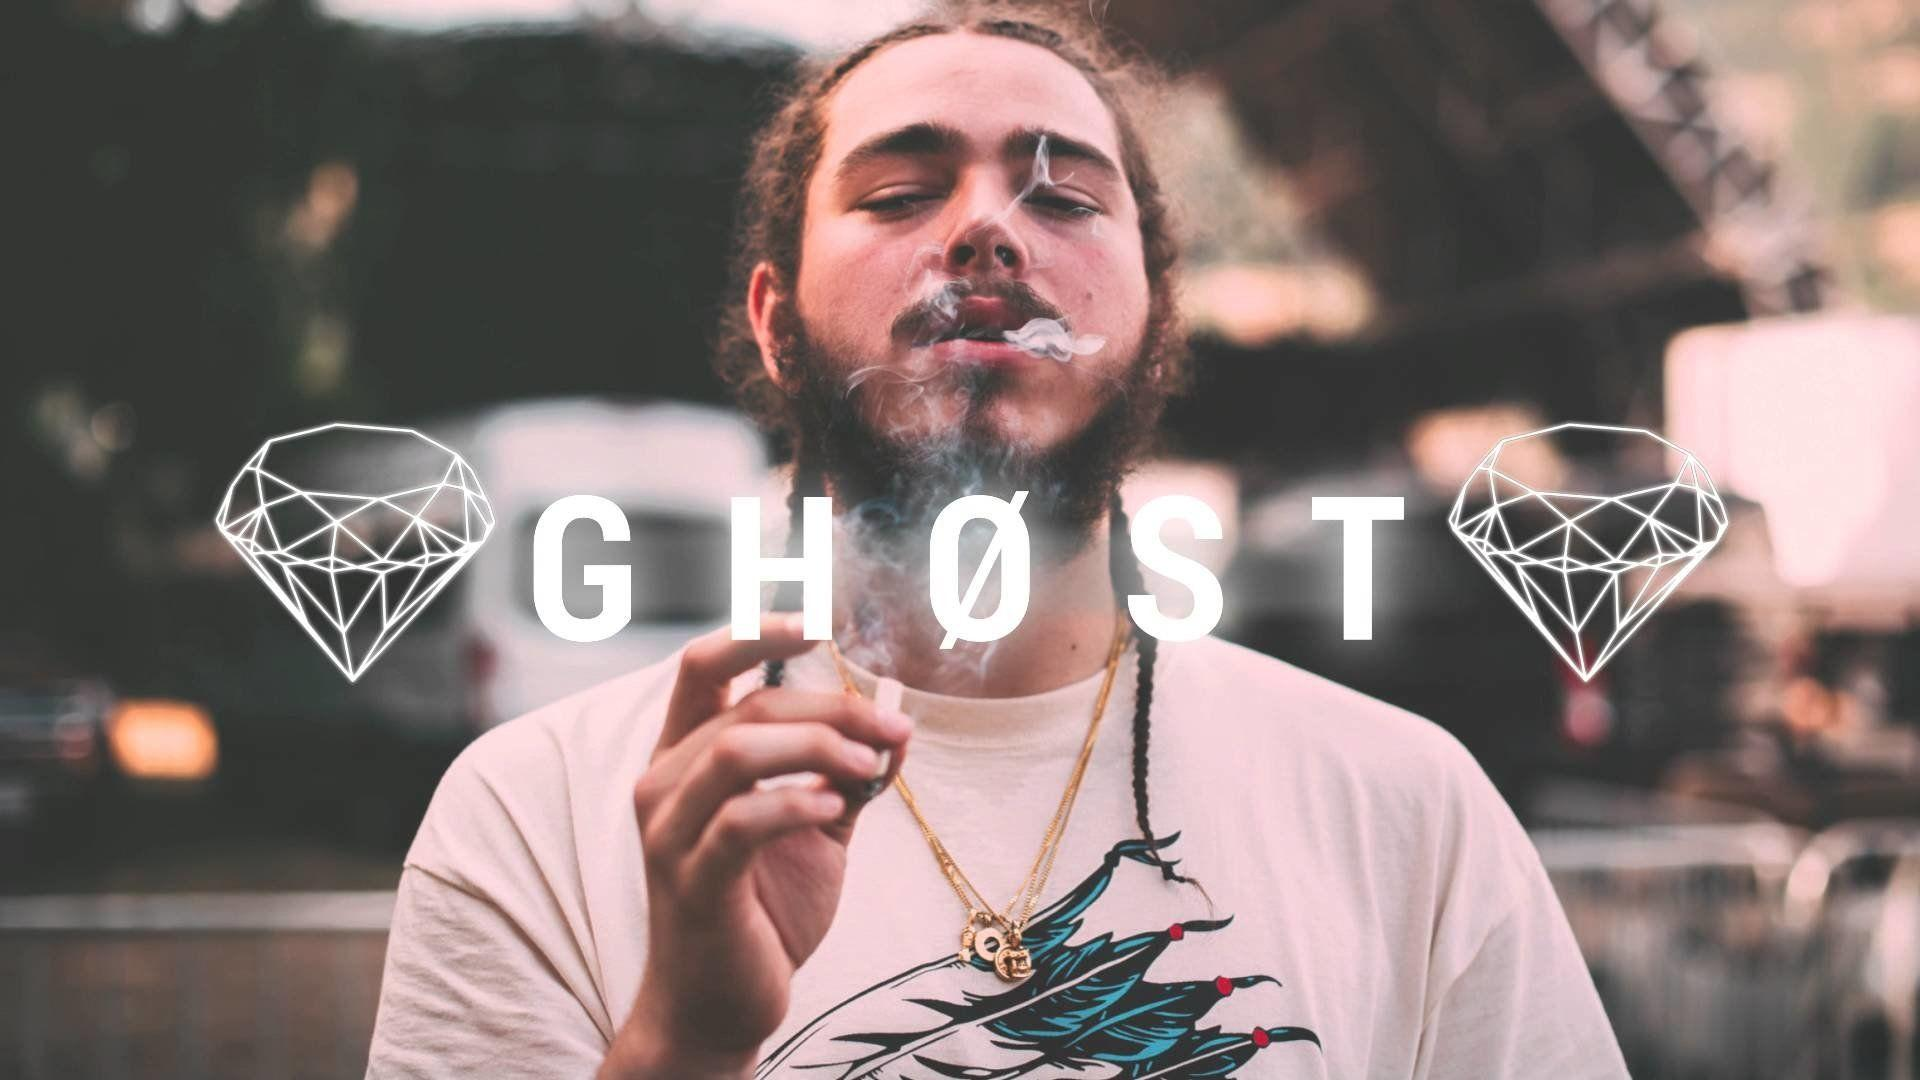 Post Malone 2018 Wallpapers - Wallpaper Cave